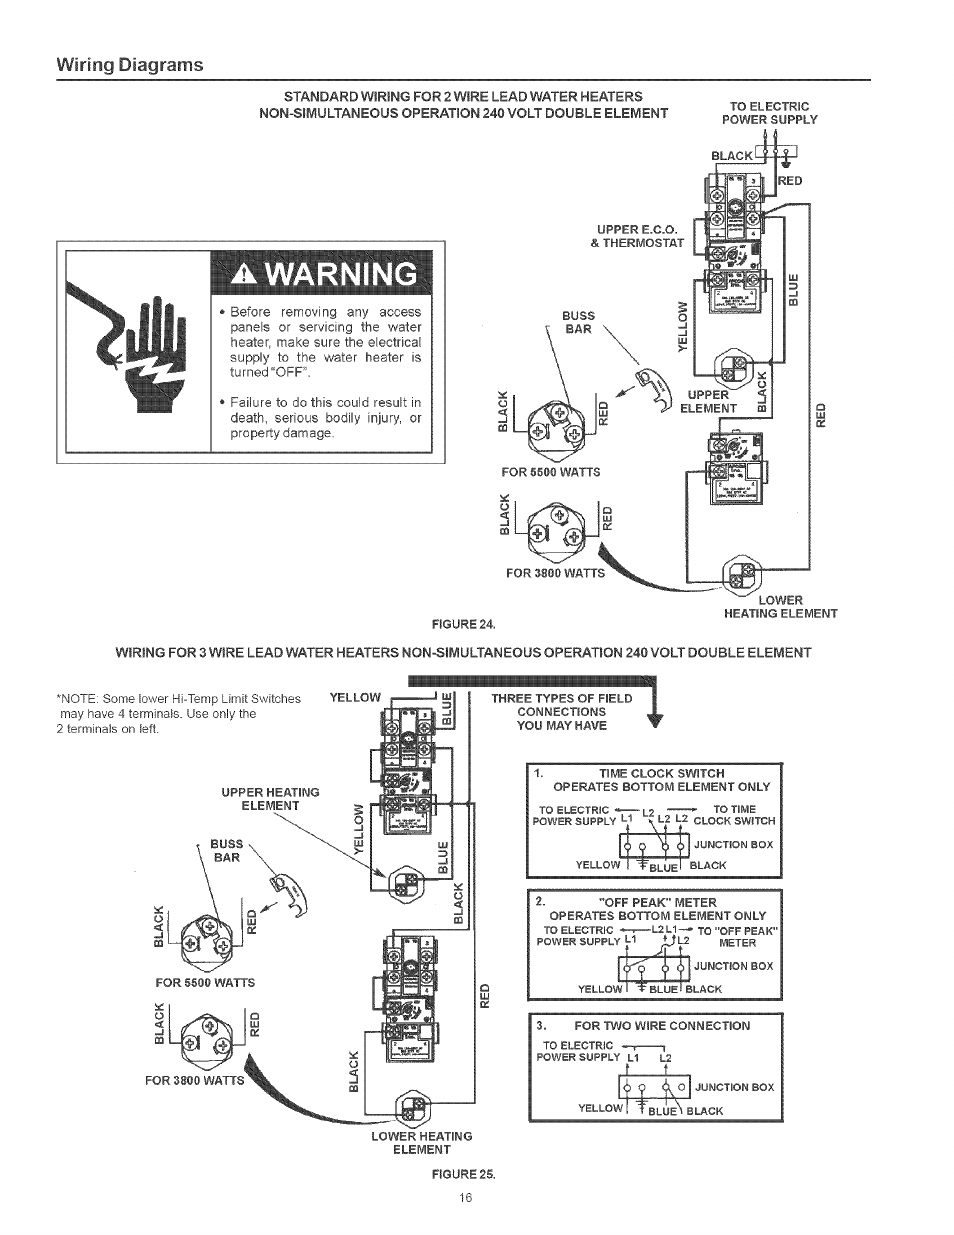 Wiring diagrams, Ra warning | Kenmore POWER MISER 153.320661 ... on water pump switch wiring diagram, water heater parts diagram, water heater install diagram, suburban water heater wiring diagram, water heater thermostat wiring diagram, atwood water heater wiring diagram, water heater bypass valve, water sensor switch wiring diagram, rv hot water heater diagram, water heater wires, 240v baseboard heater wiring diagram,